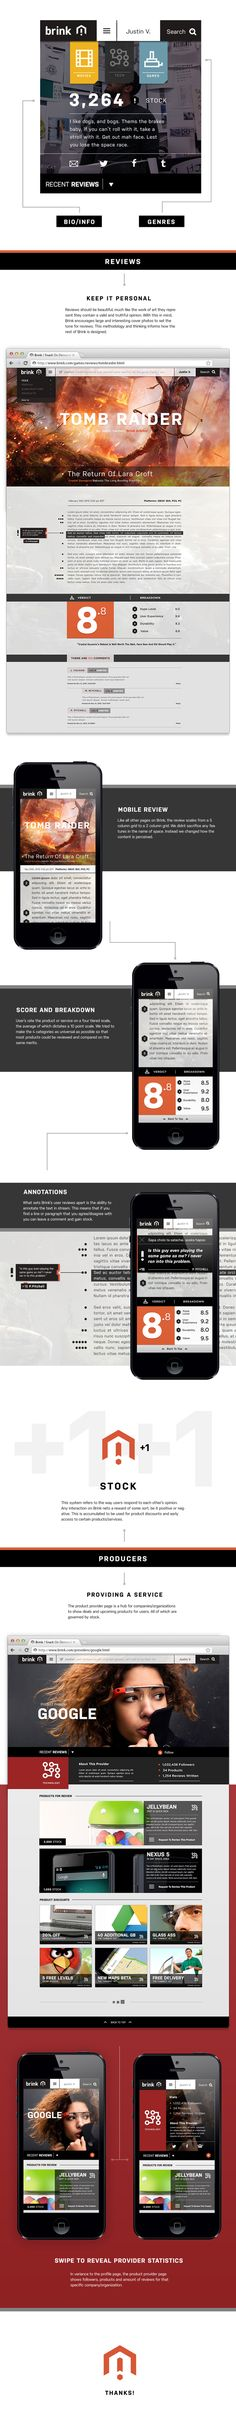 Brink by Justin Vachon, via Behance, Falt UI with realistic images tombrider